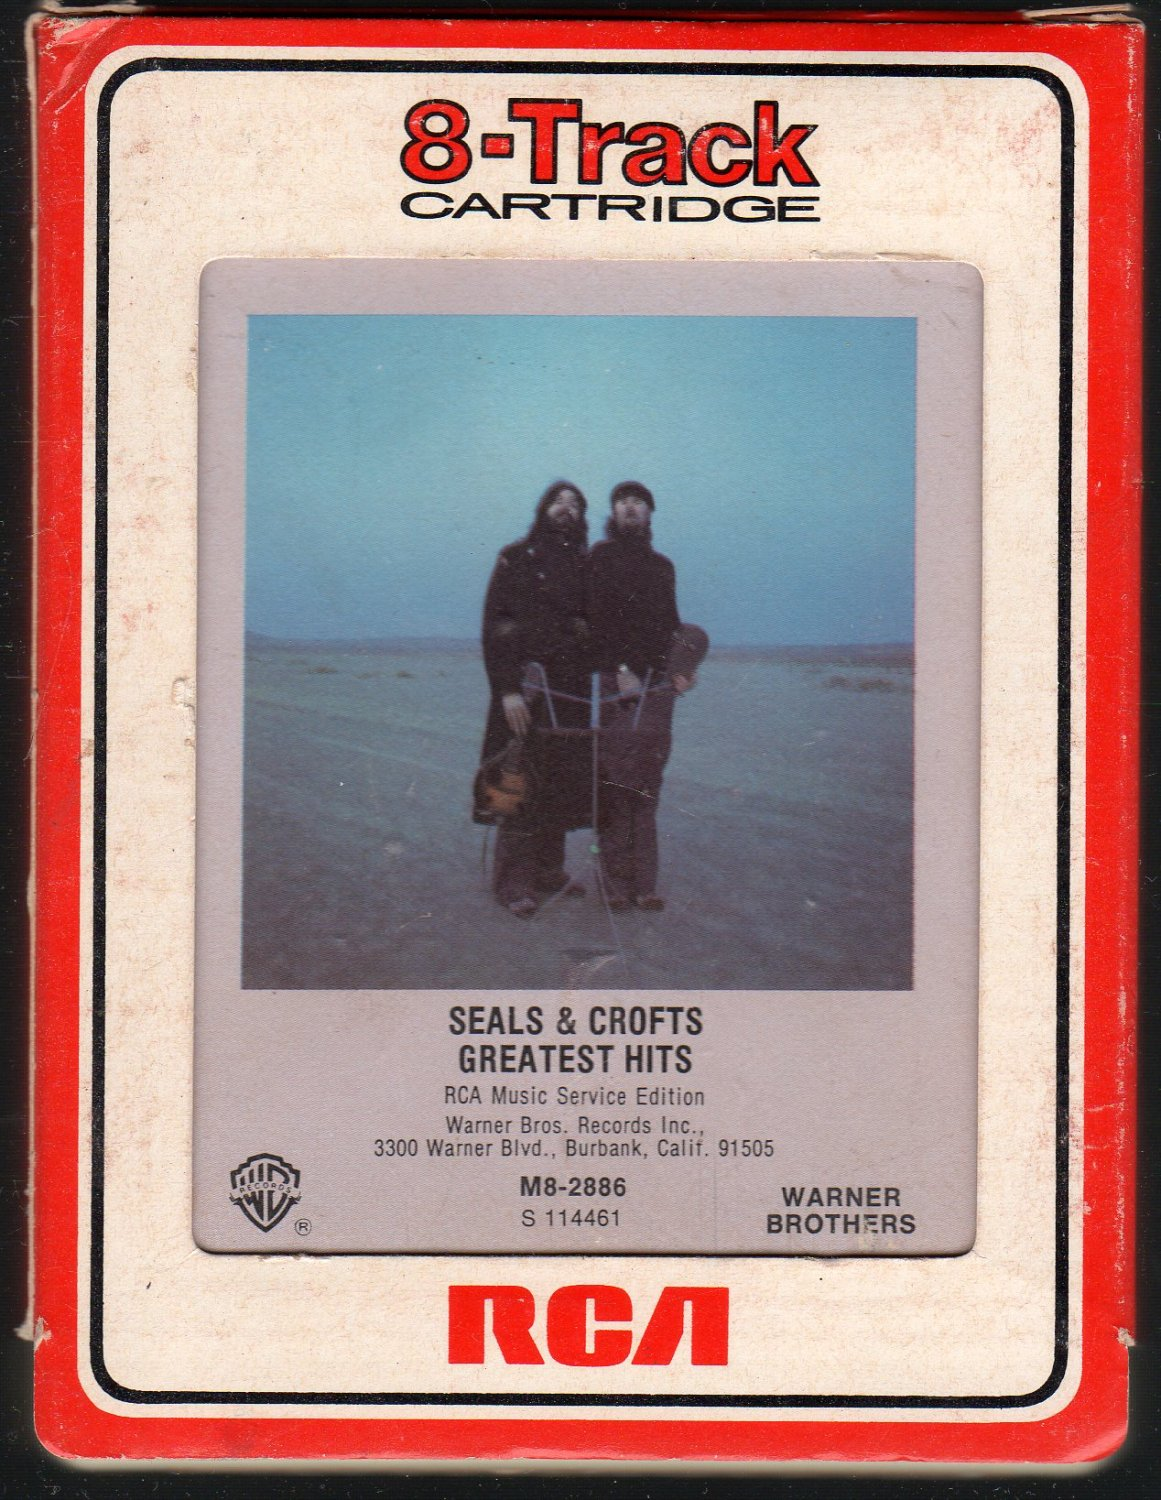 Seals & Crofts - Greatest Hits RCA 8-track tape